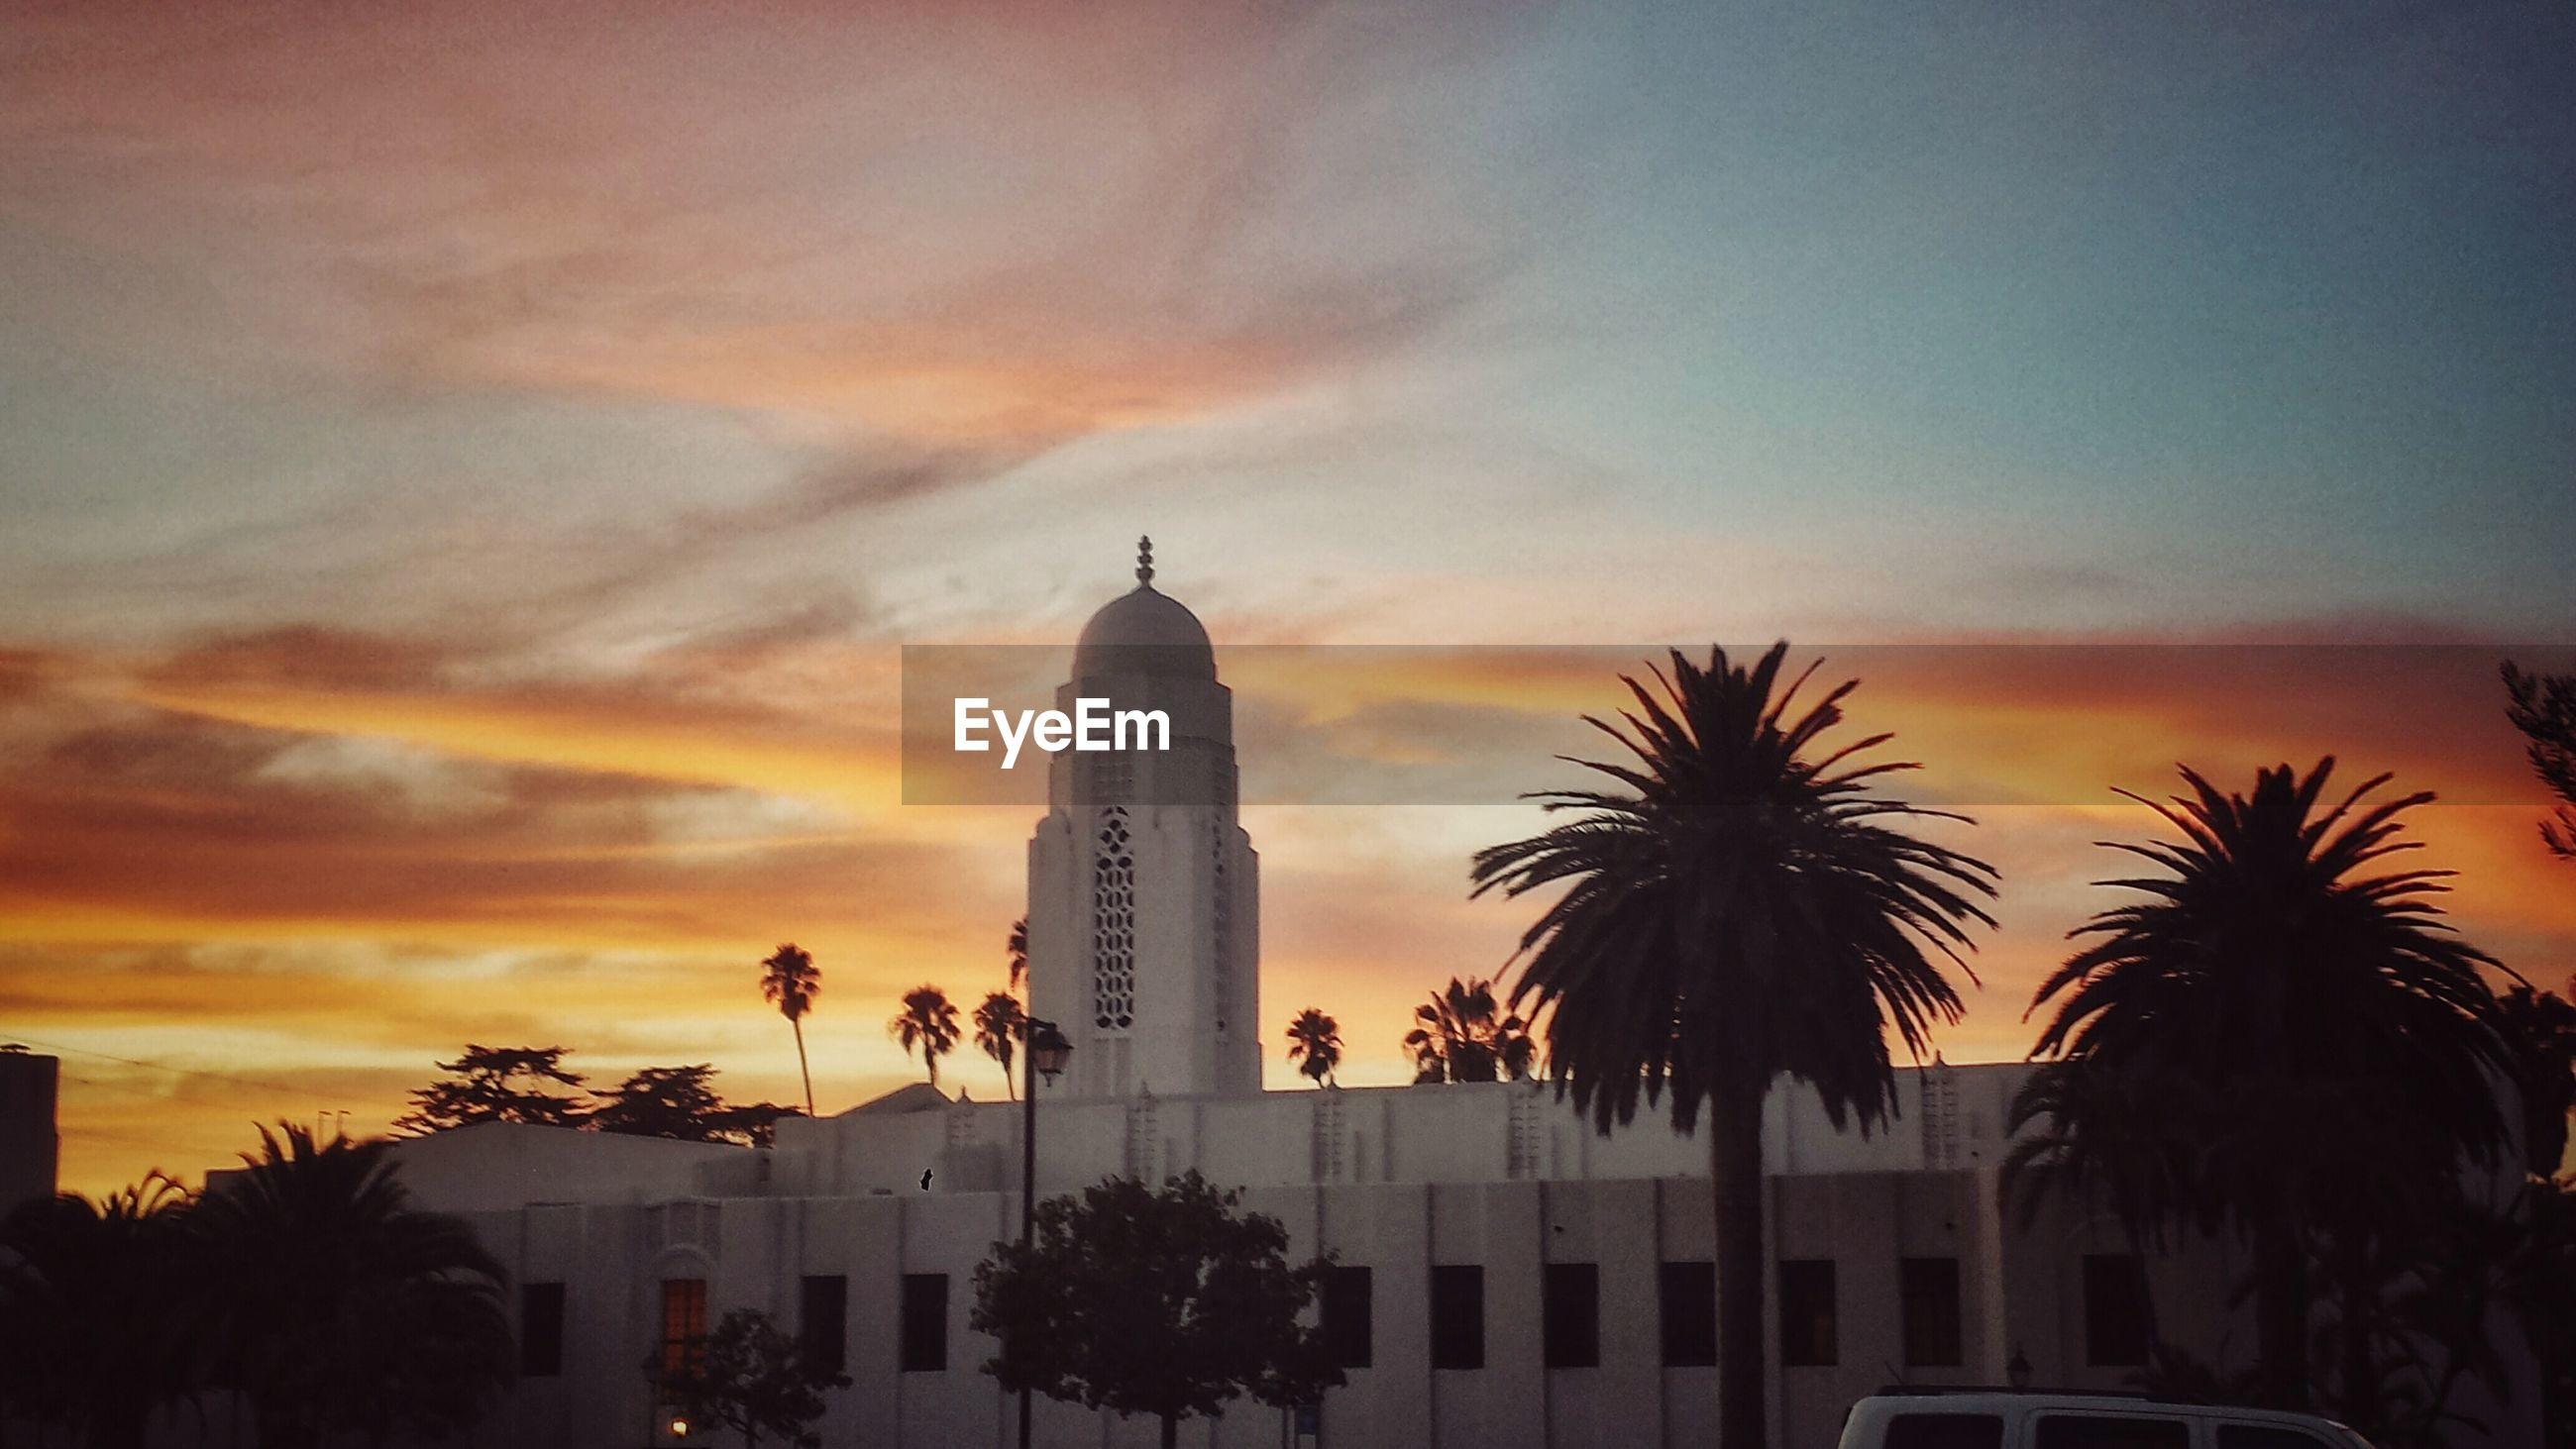 sunset, architecture, palm tree, building exterior, built structure, sky, tall - high, orange color, low angle view, city, silhouette, tower, skyscraper, modern, cloud - sky, tree, office building, cloud, growth, building